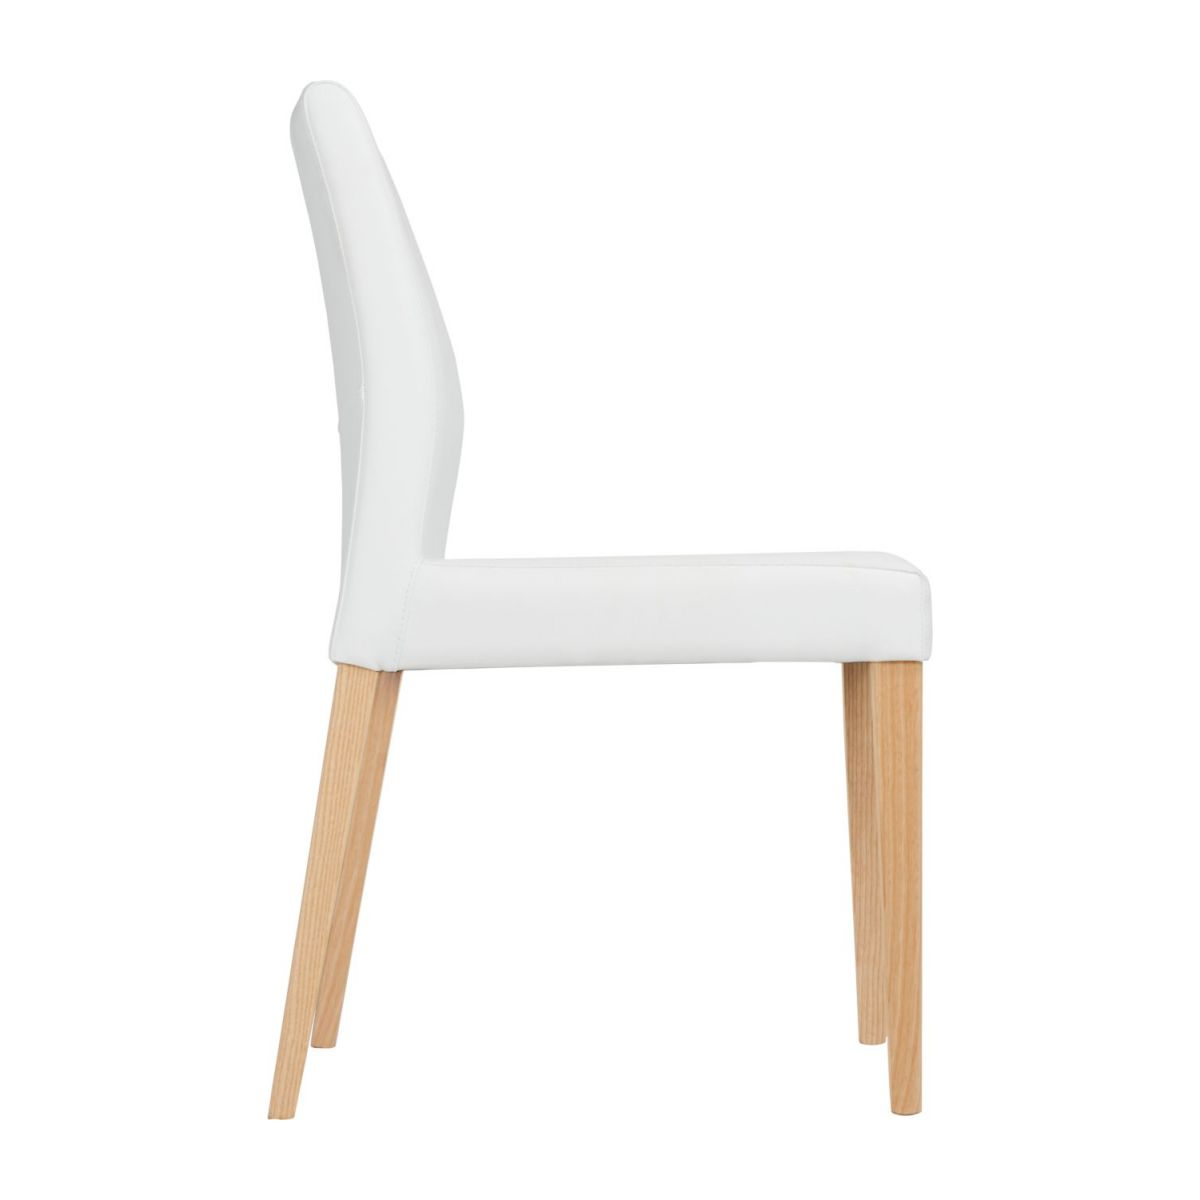 Chair made of imitation leather, white with ash legs n°5